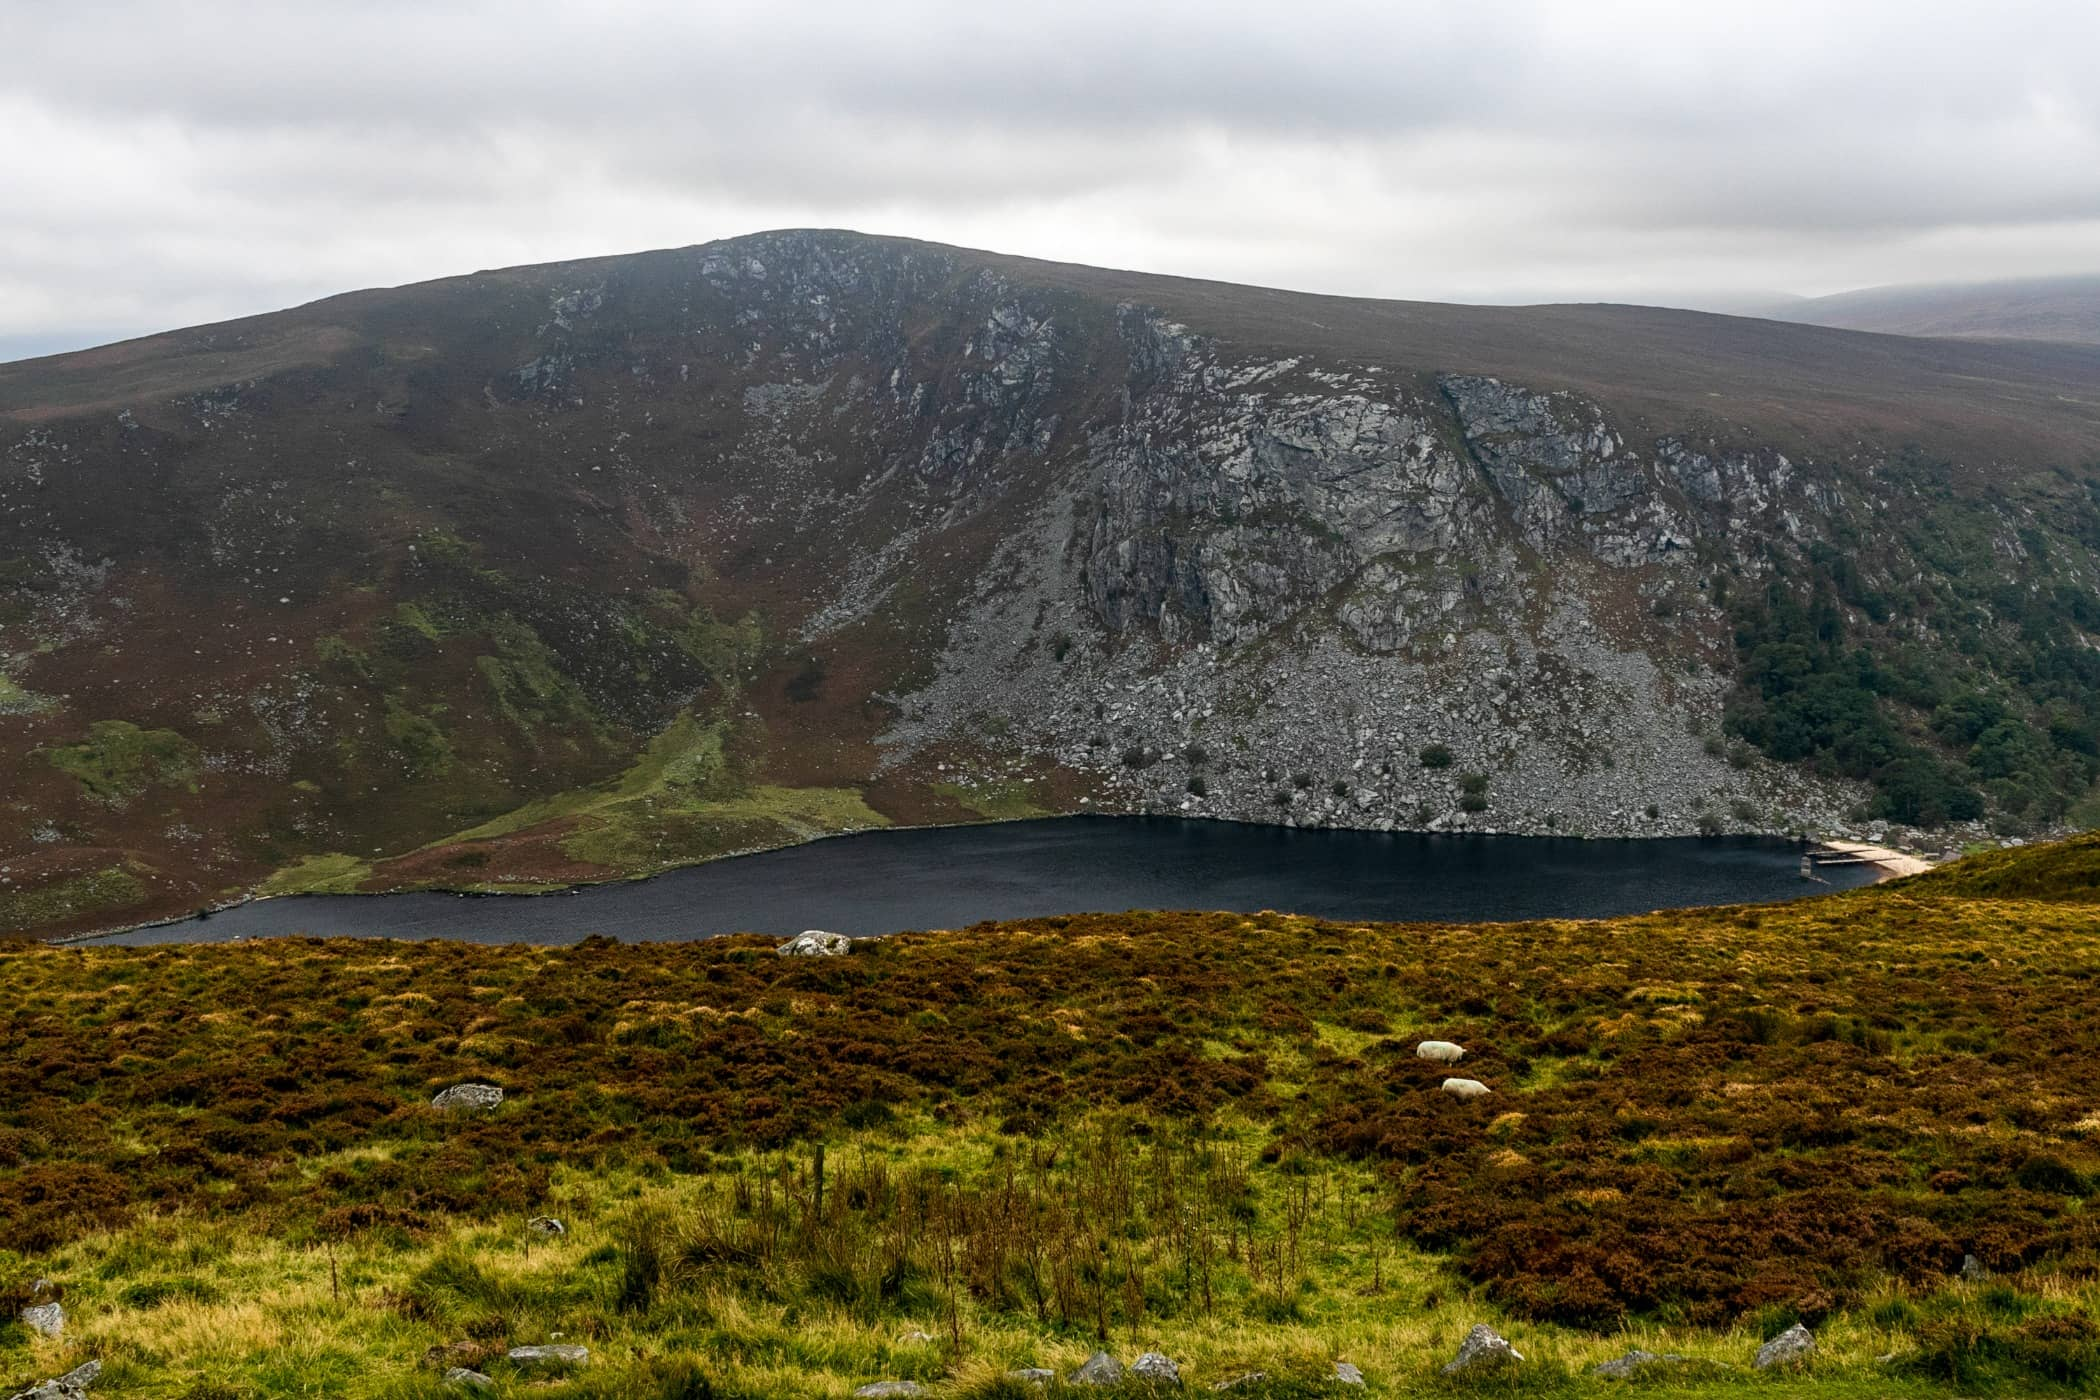 Natural landscape, Mountainous landforms, Loch, Wilderness, Lake, Fell, Hill, Tarn, Mountain, Highland